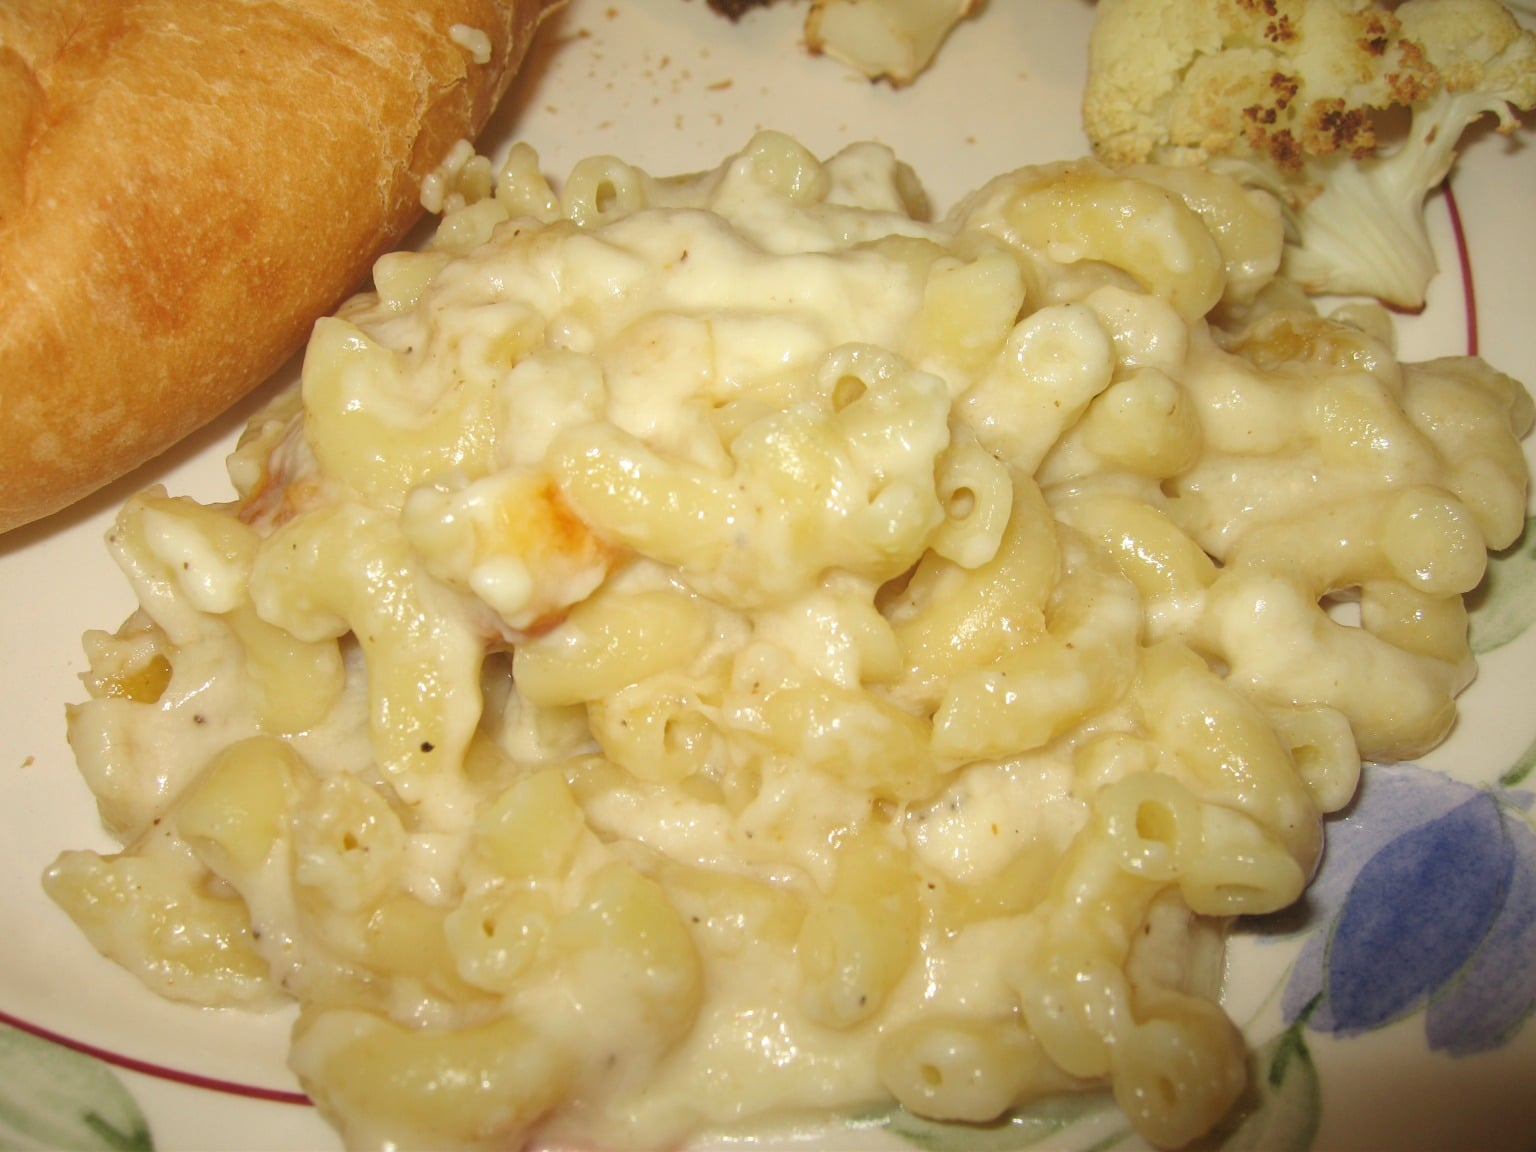 Classic Baked Macaroni and Cheese - Why eat boxed mac and cheese when you can easily make it homemade style? virginiasweetpea.com